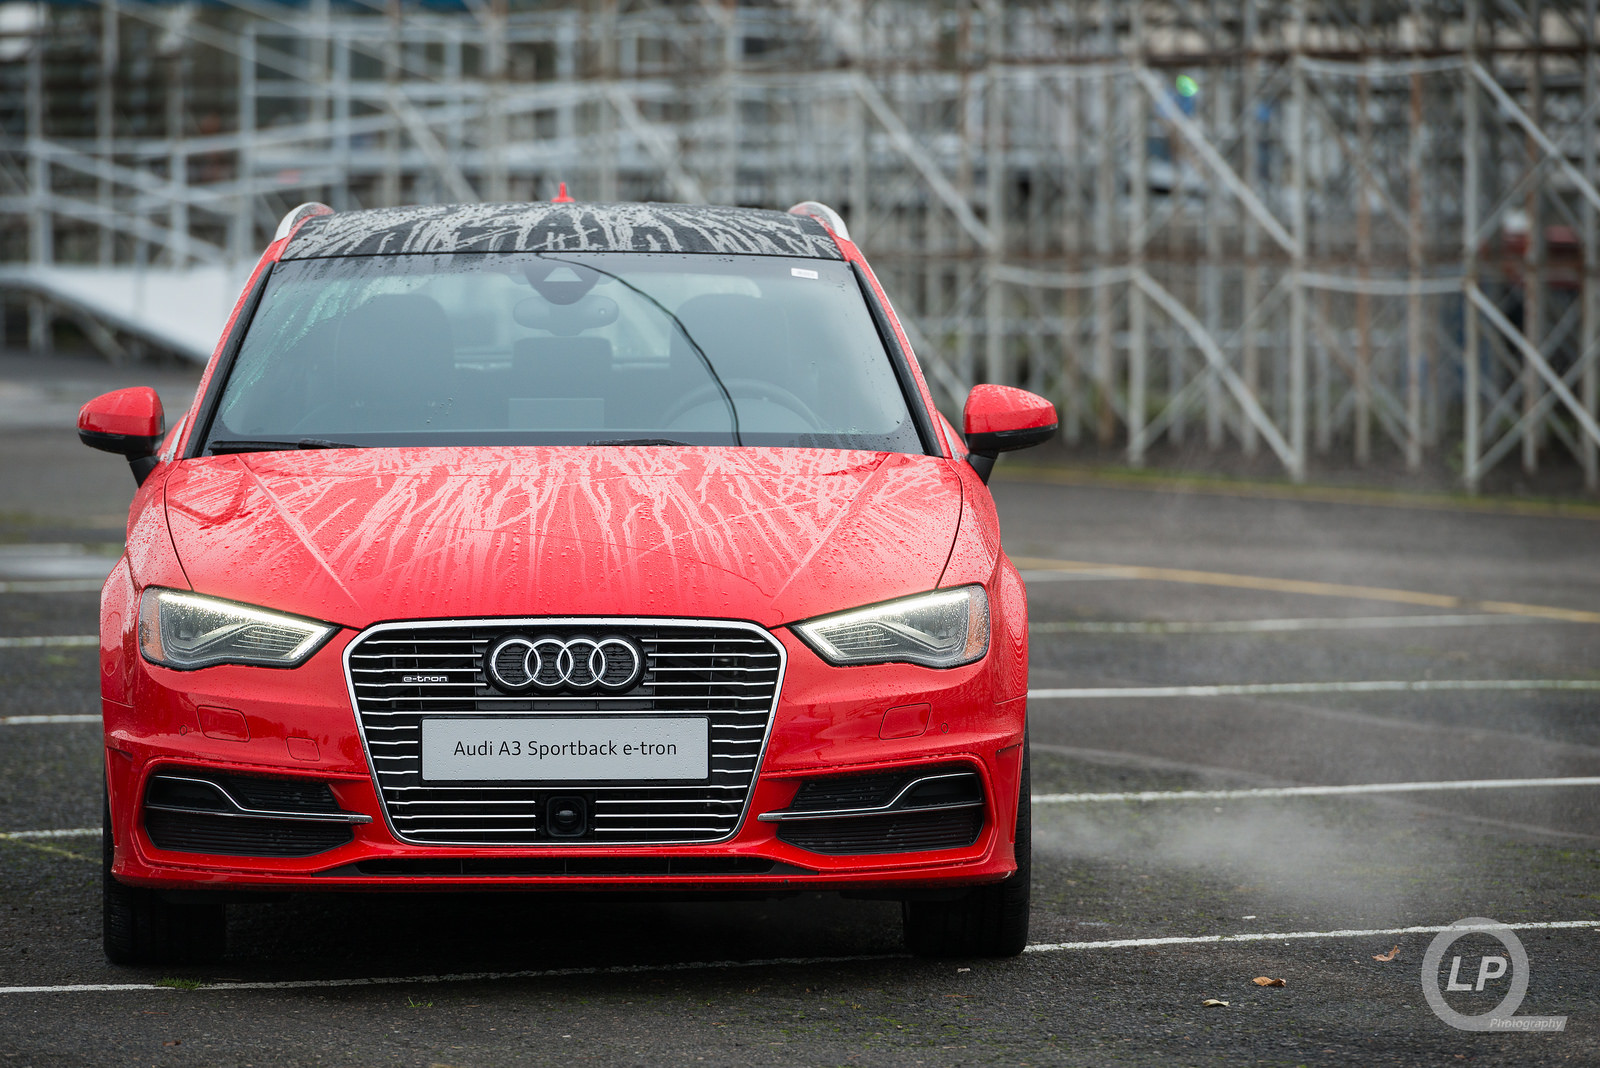 Red Audi A3 Sportback e-tron with LED headlights